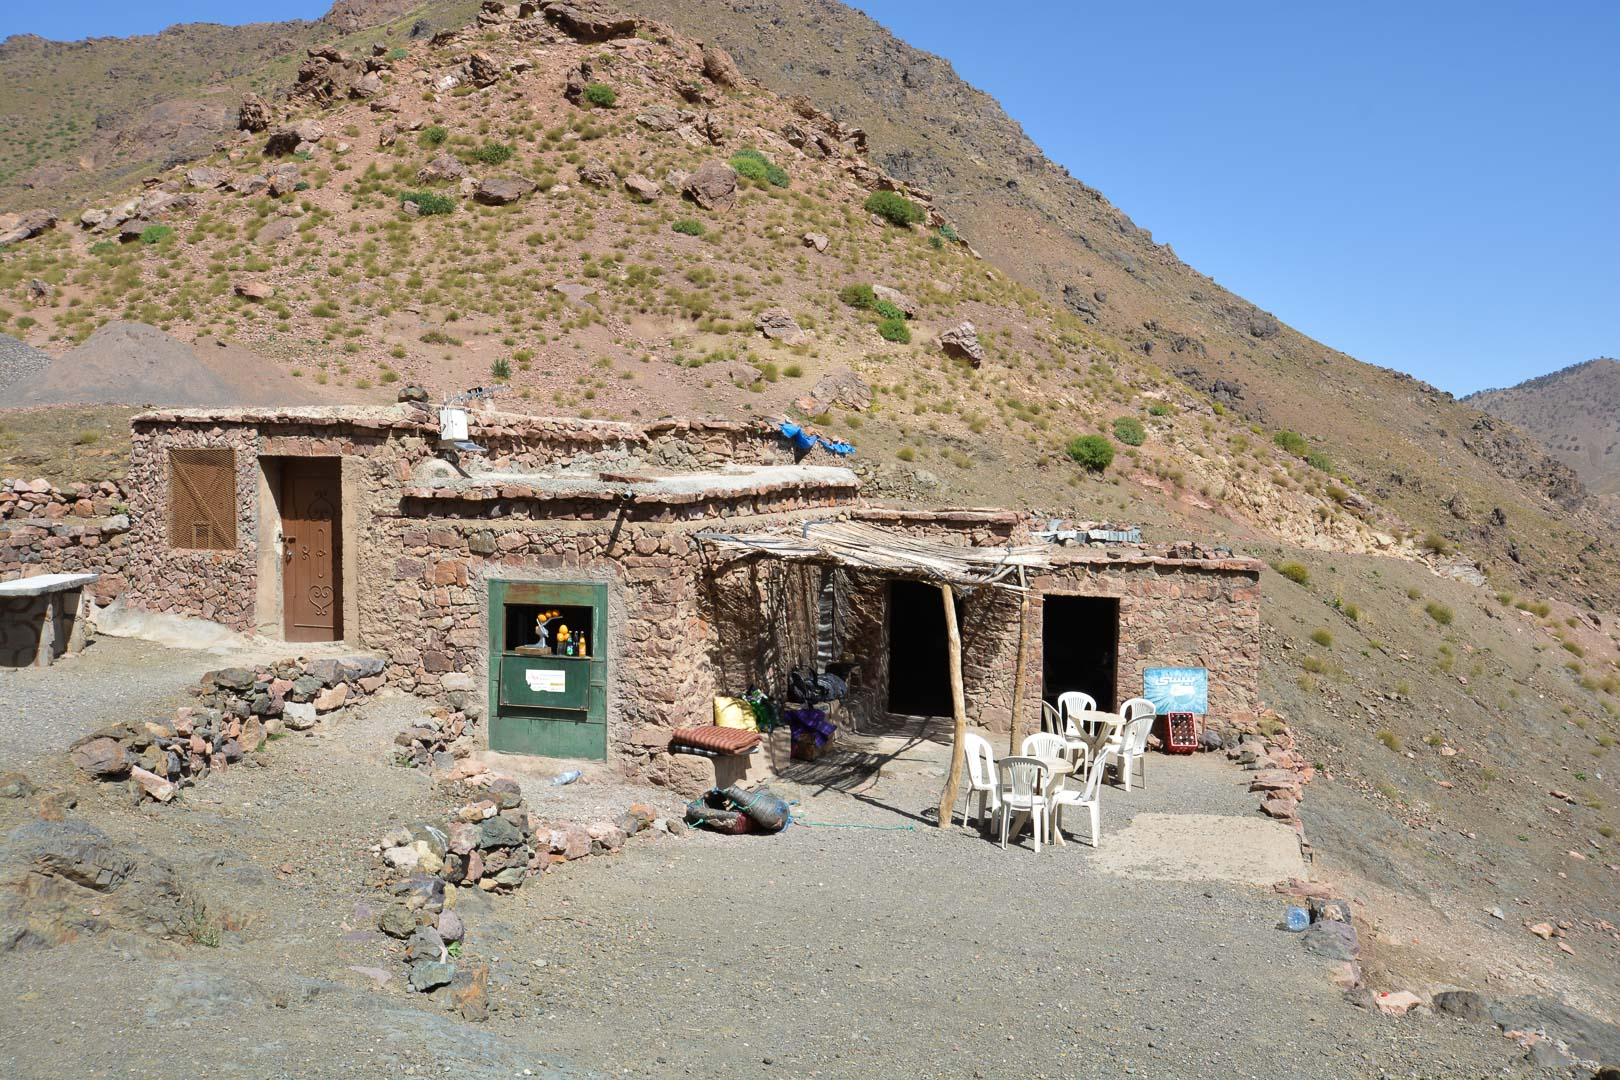 The makeshift cafe at the mountain pass